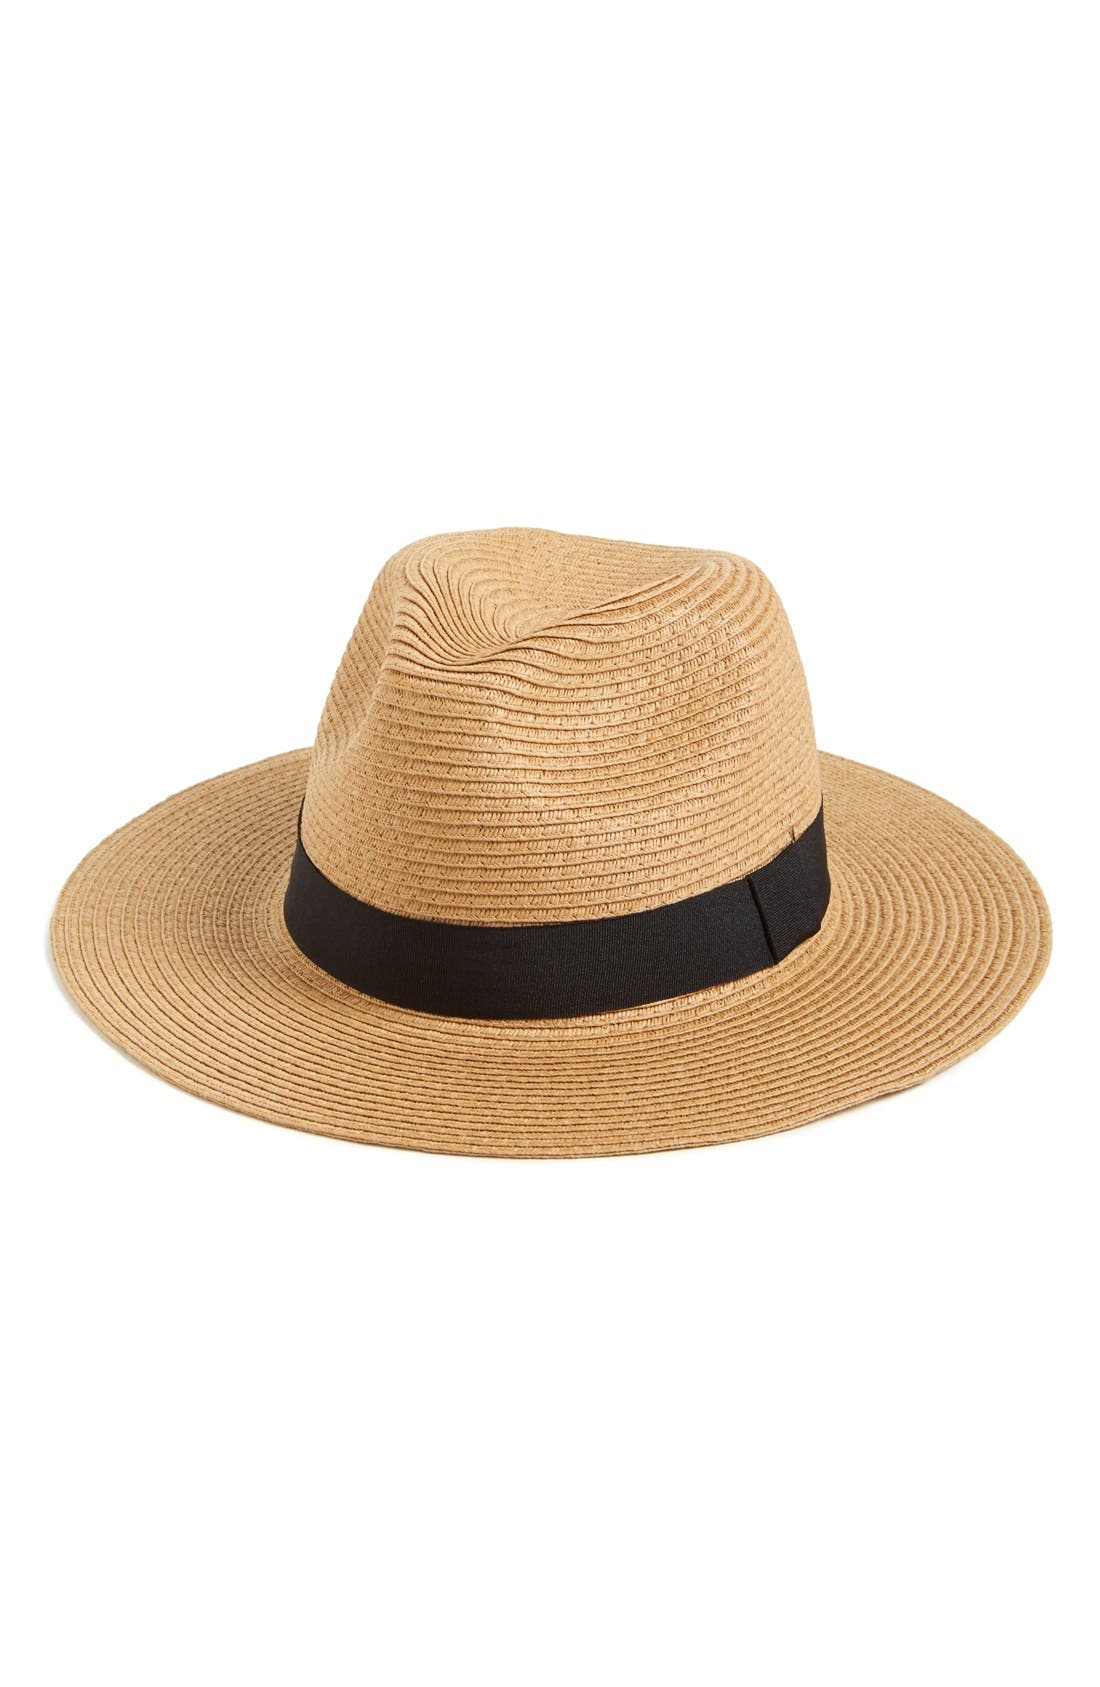 Alternate Image 1 Selected - Leith Floppy Straw Hat